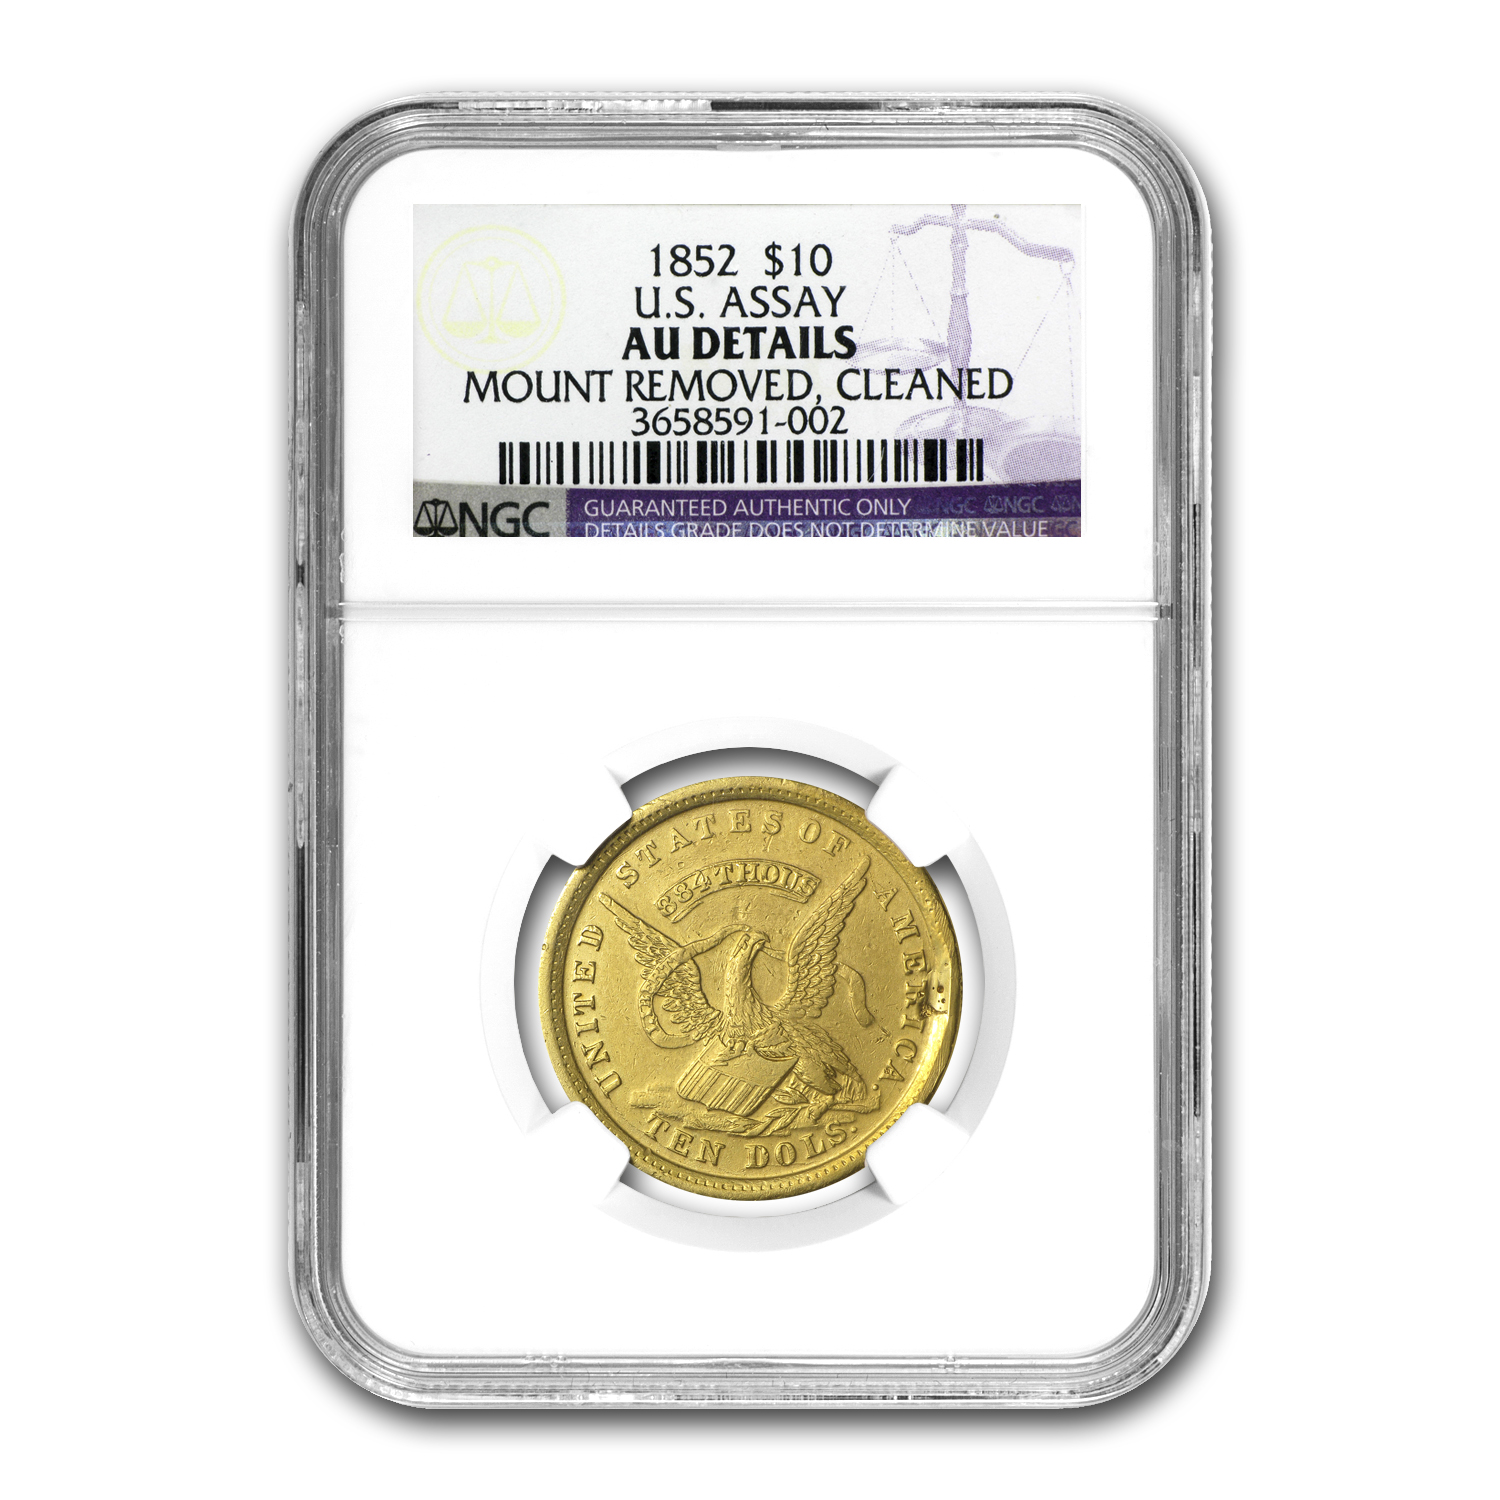 1852 $10 Gold U.S. Assay AU Details NGC (Mount Removed)